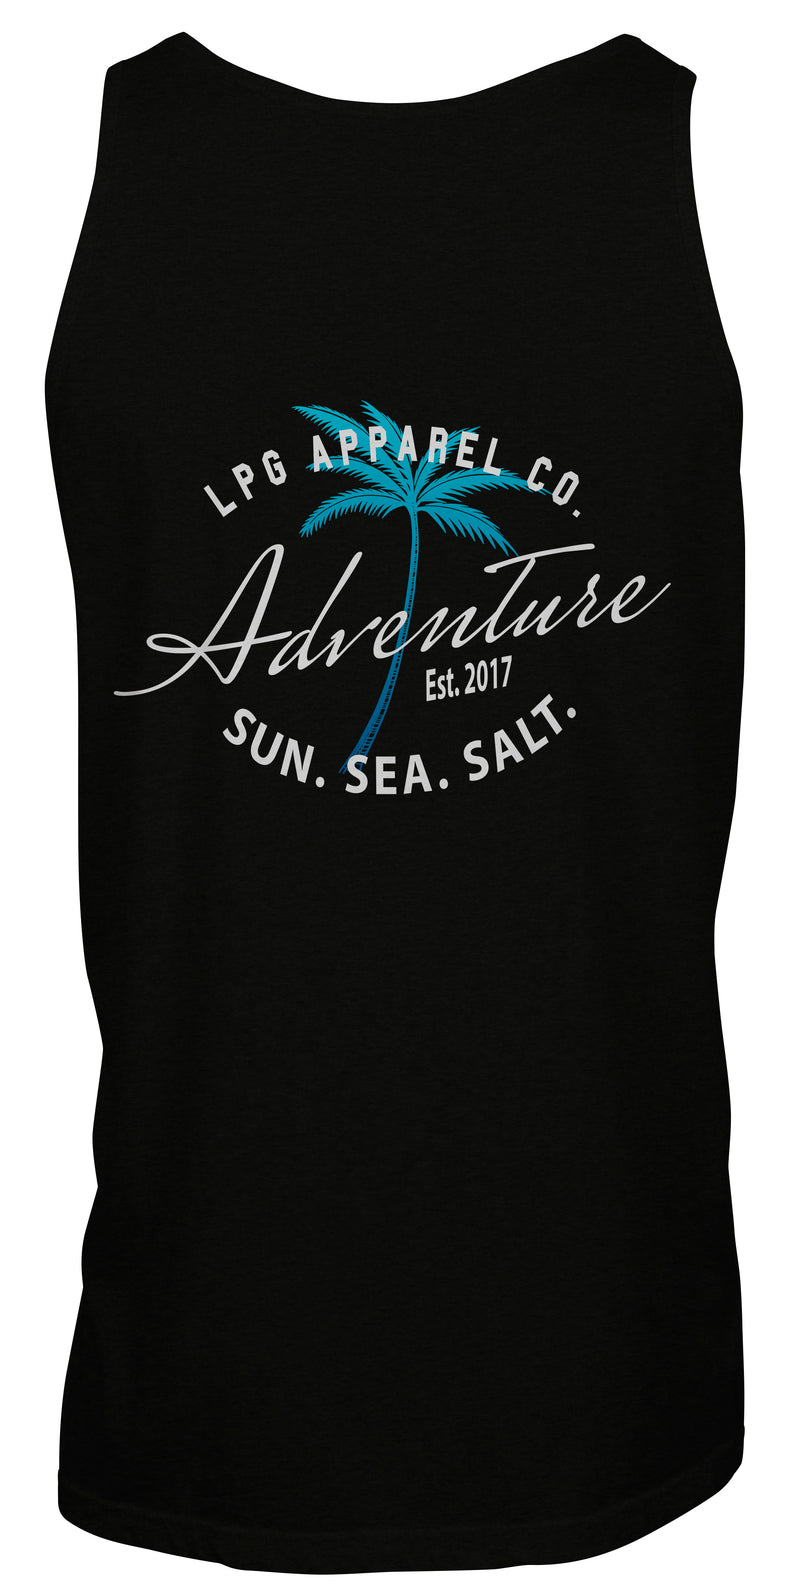 LPG Apparel Co. Adventure Palms Sun. Sea. Salt. Surf Unisex Tank Top